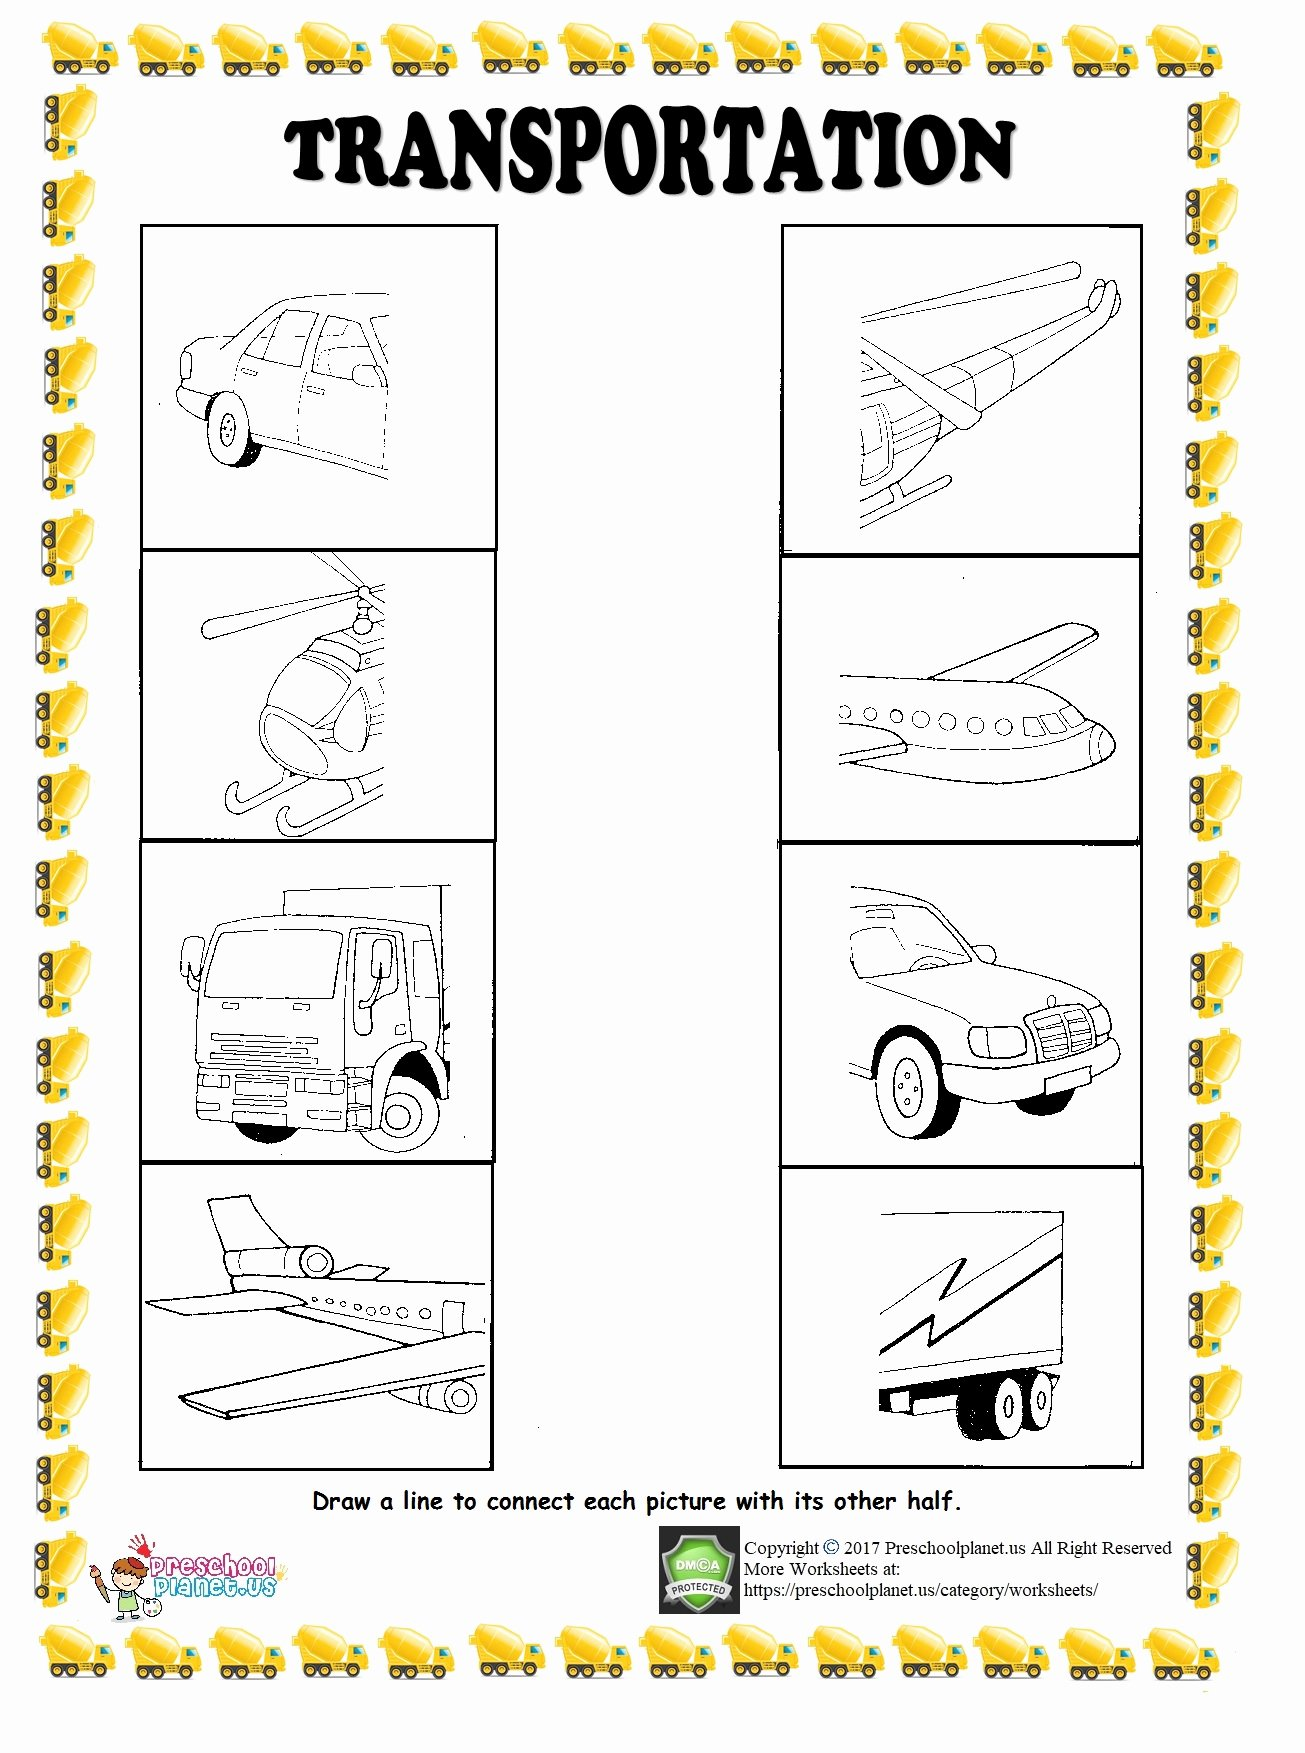 Transport Worksheets for Preschoolers top Find Half Of Given Transportation Worksheet – Preschoolplanet